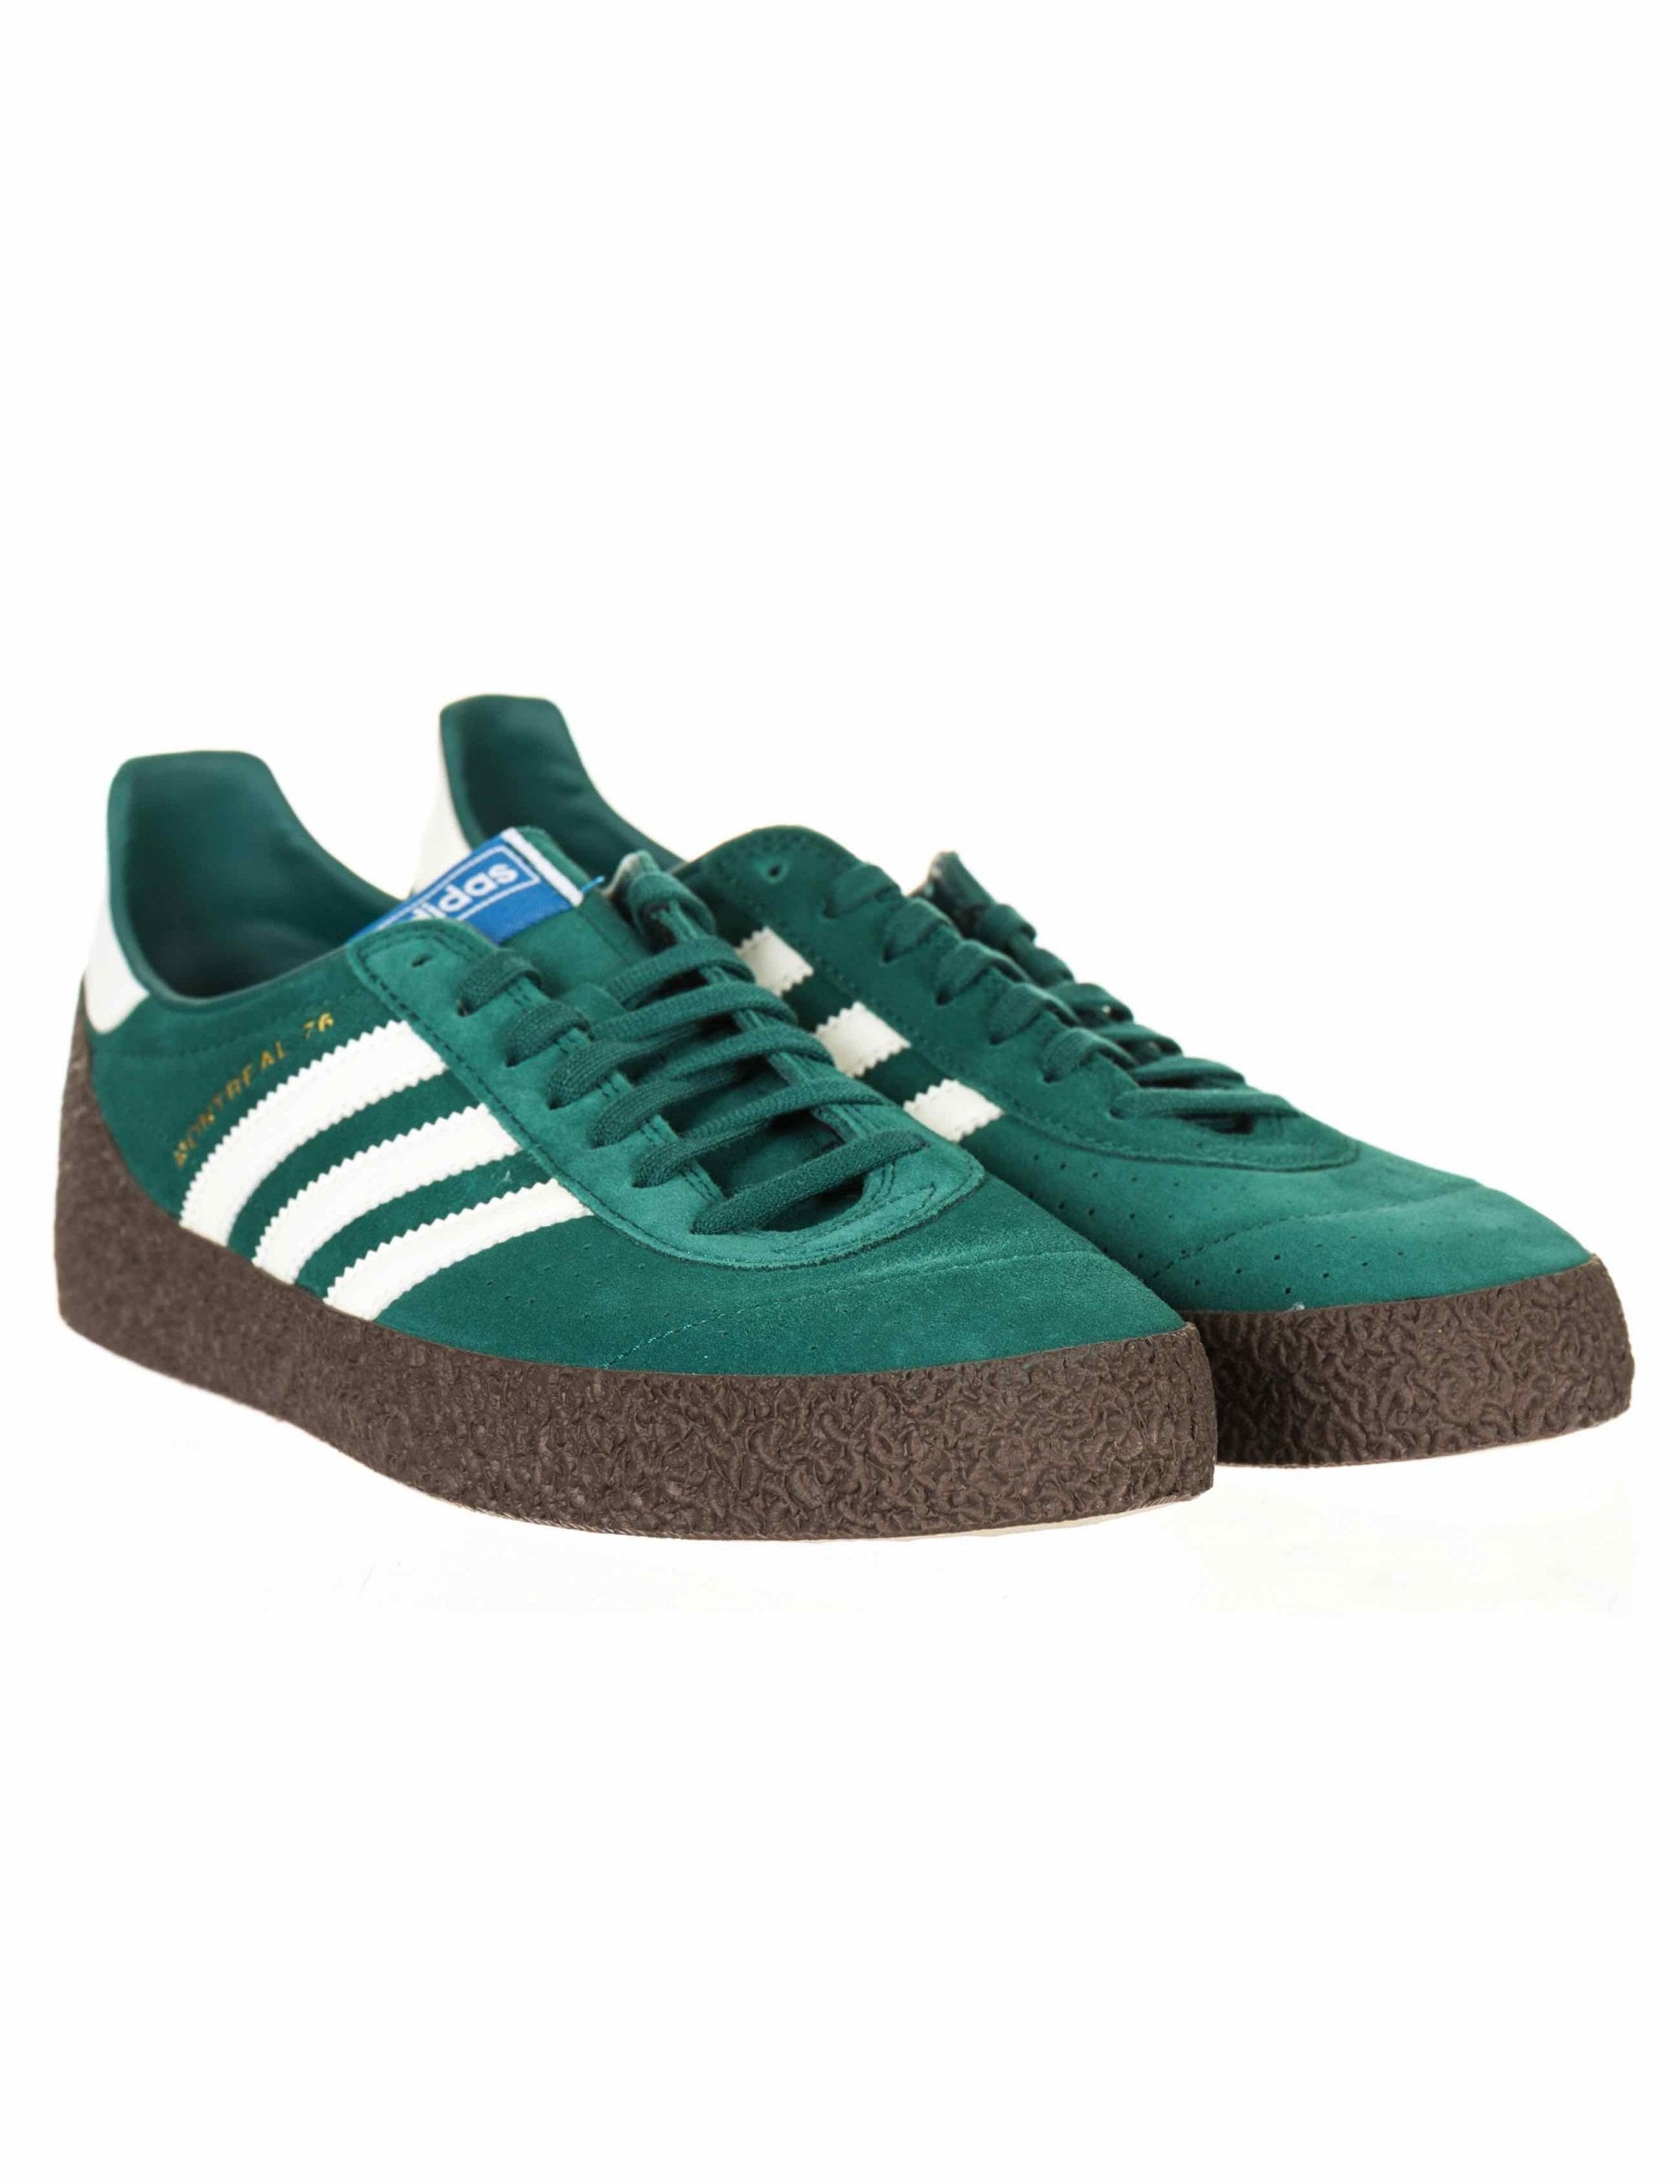 sesión Parpadeo caridad  Adidas Originals Montreal '76 Trainers - Noble Green/Off White - Footwear  from Fat Buddha Store UK